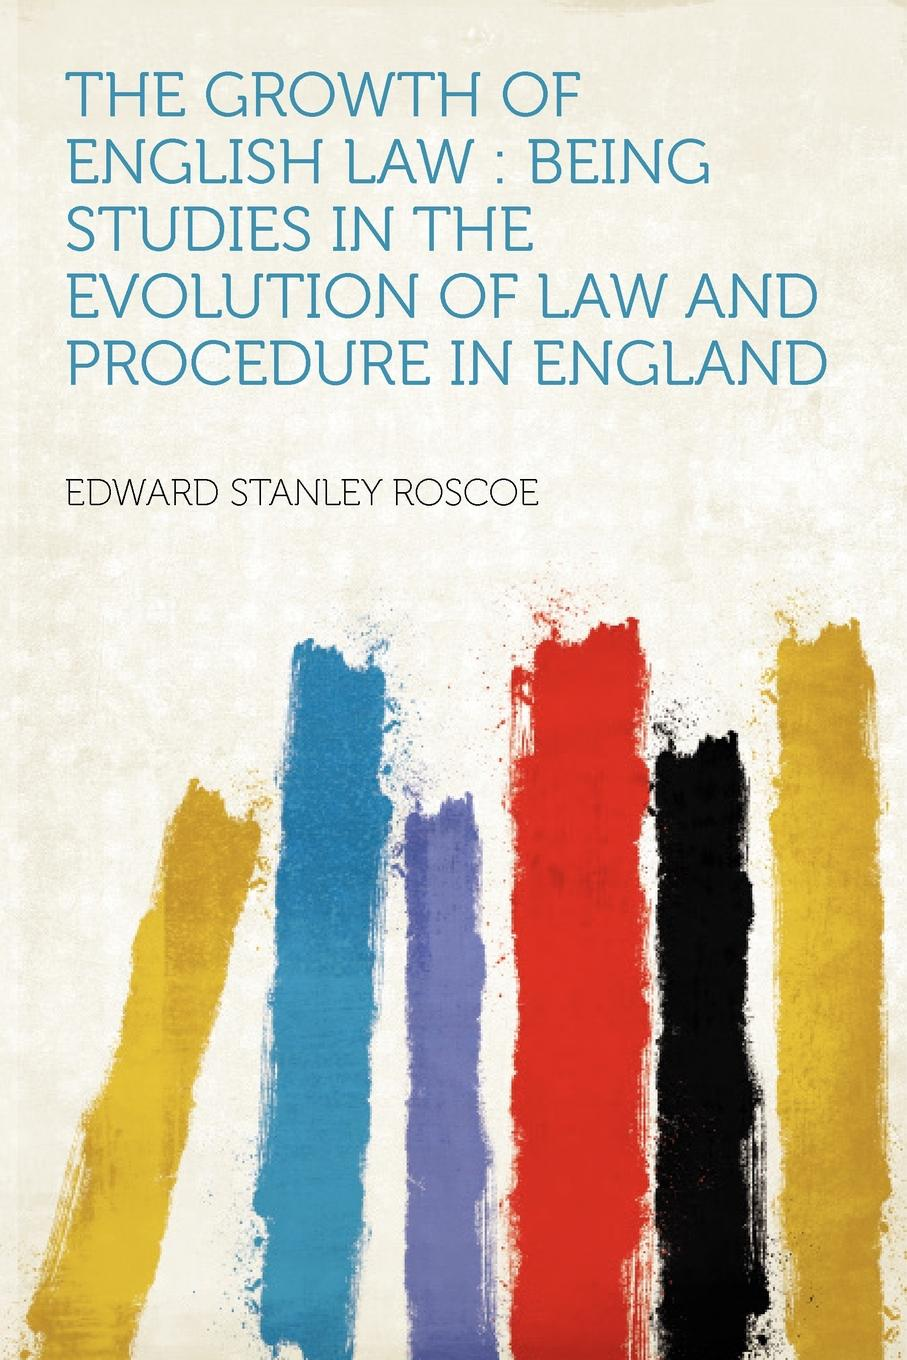 The Growth of English Law. Being Studies in the Evolution Law and Procedure England